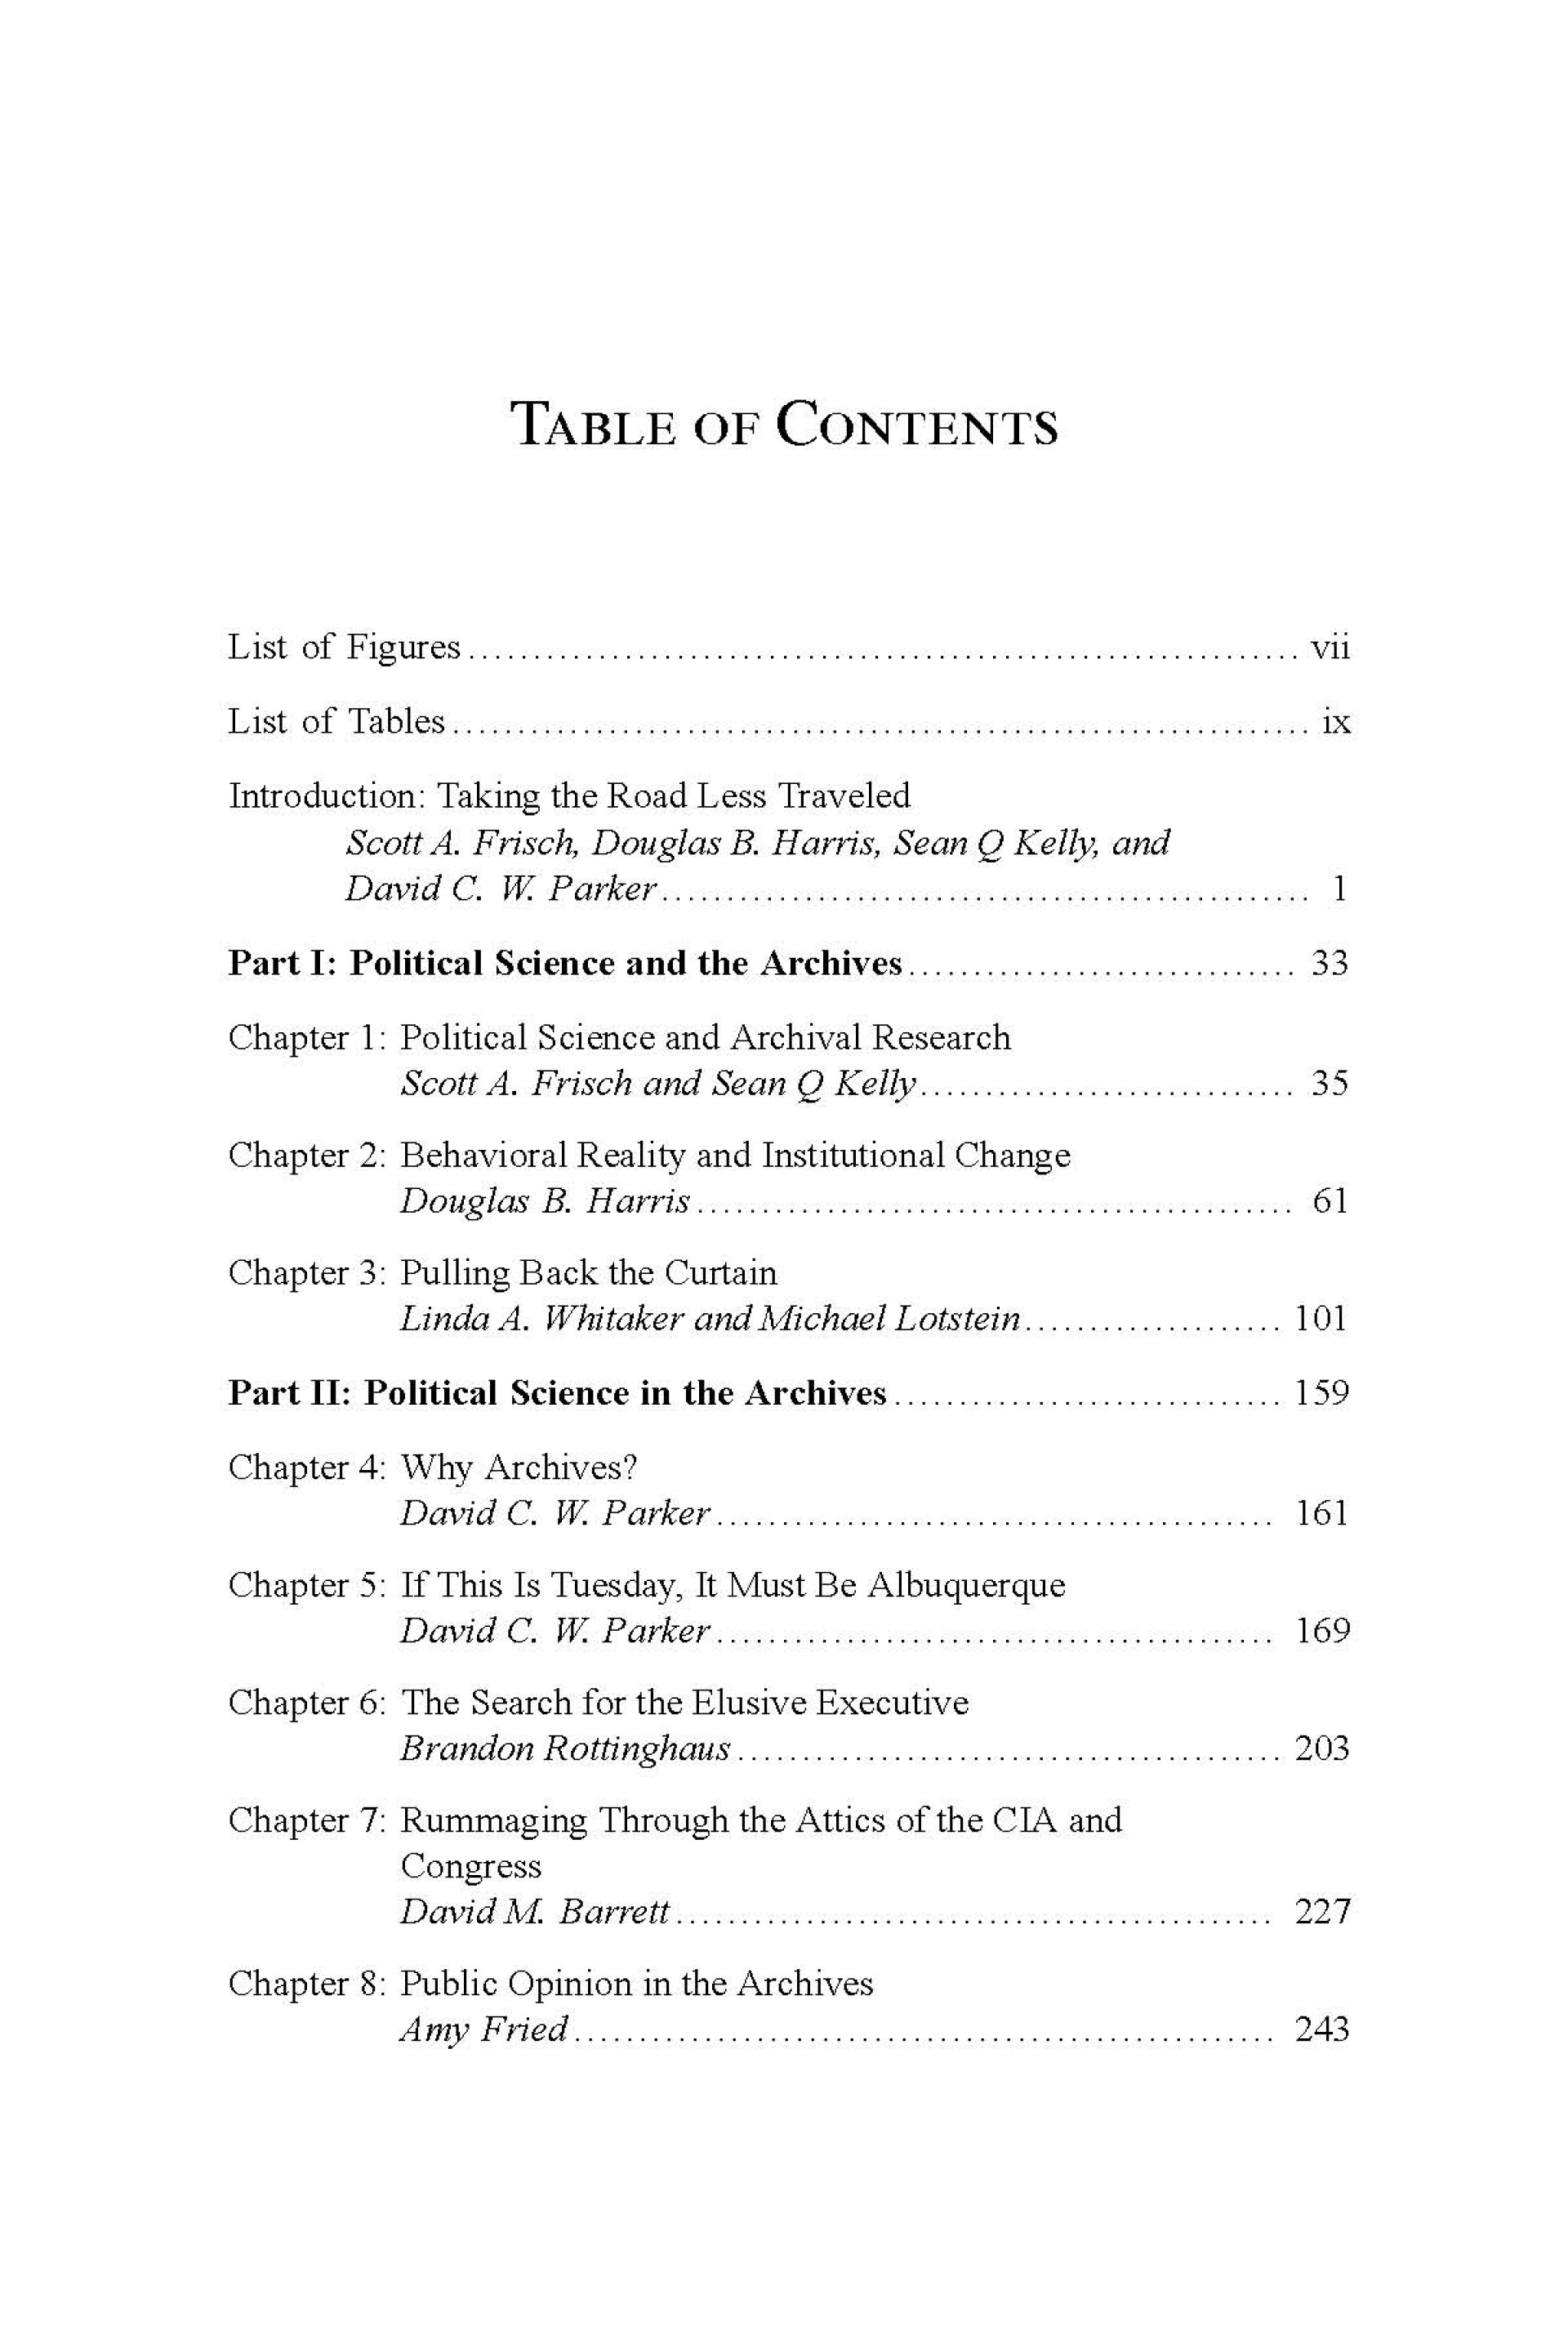 007 Research Paper Table Of Contents Darps Page Fascinating Apa Template With Style Example 1920